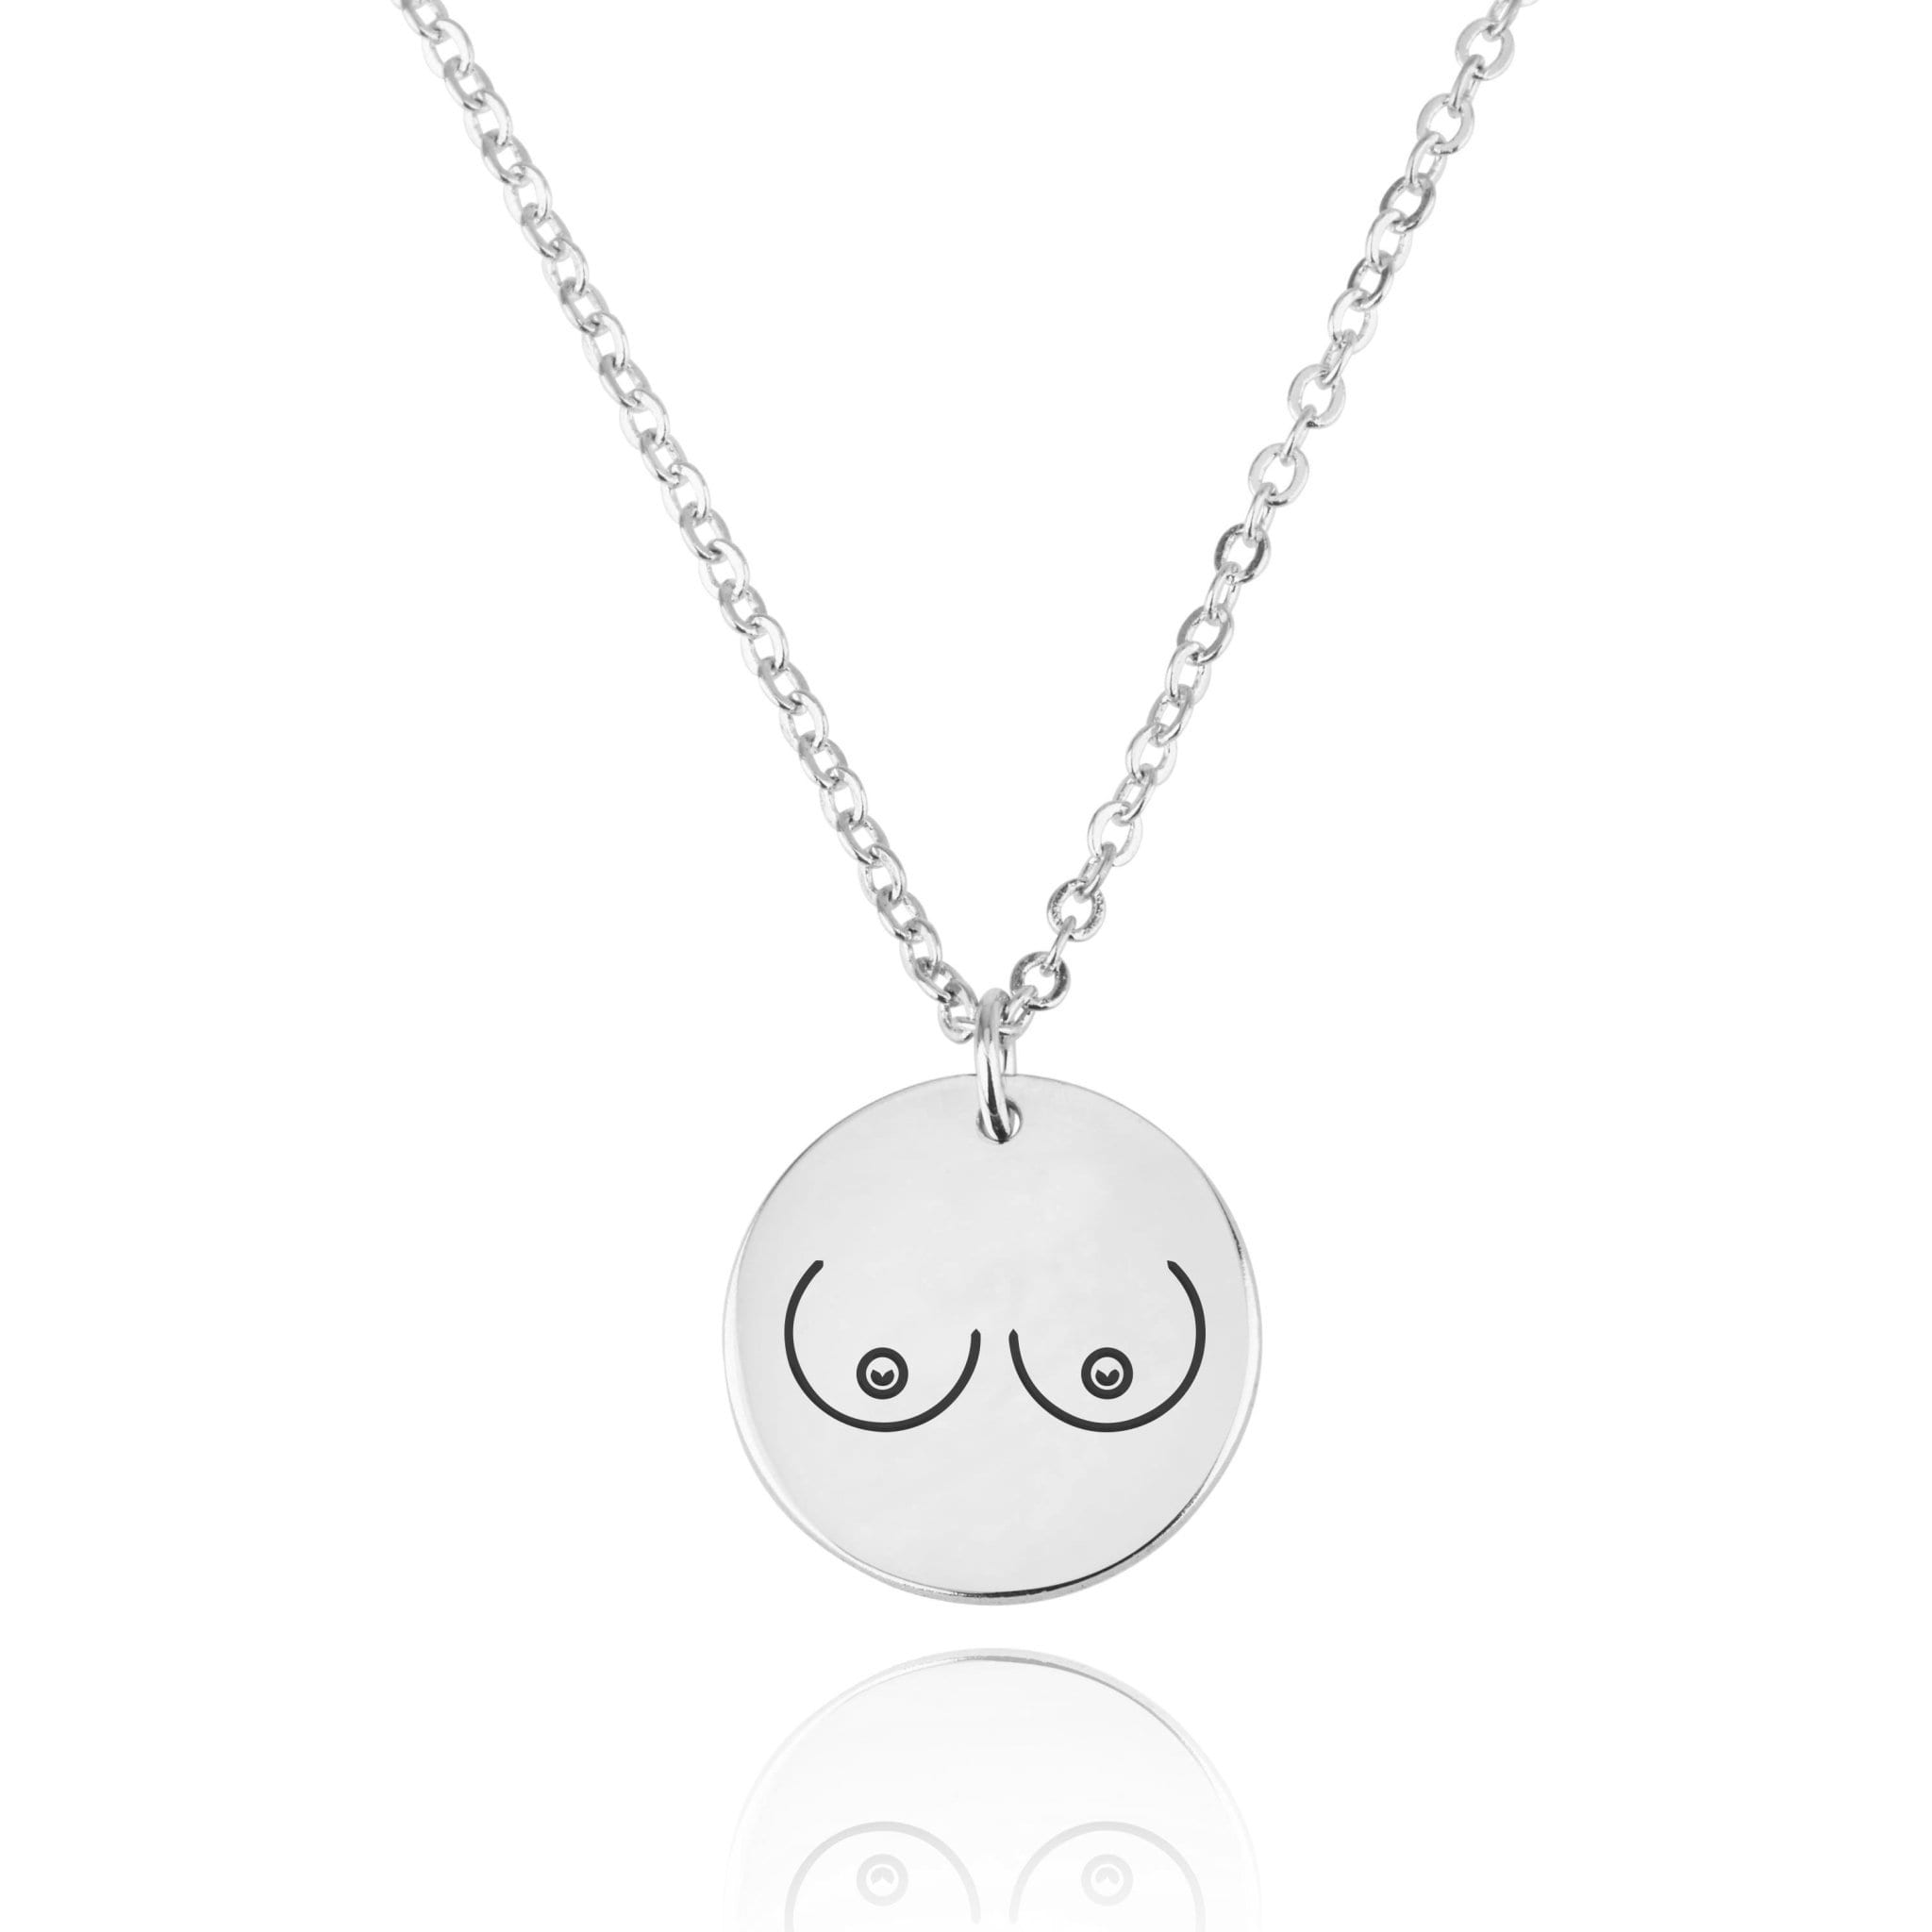 Breasts Engraving Disc Necklace - Beleco Jewelry